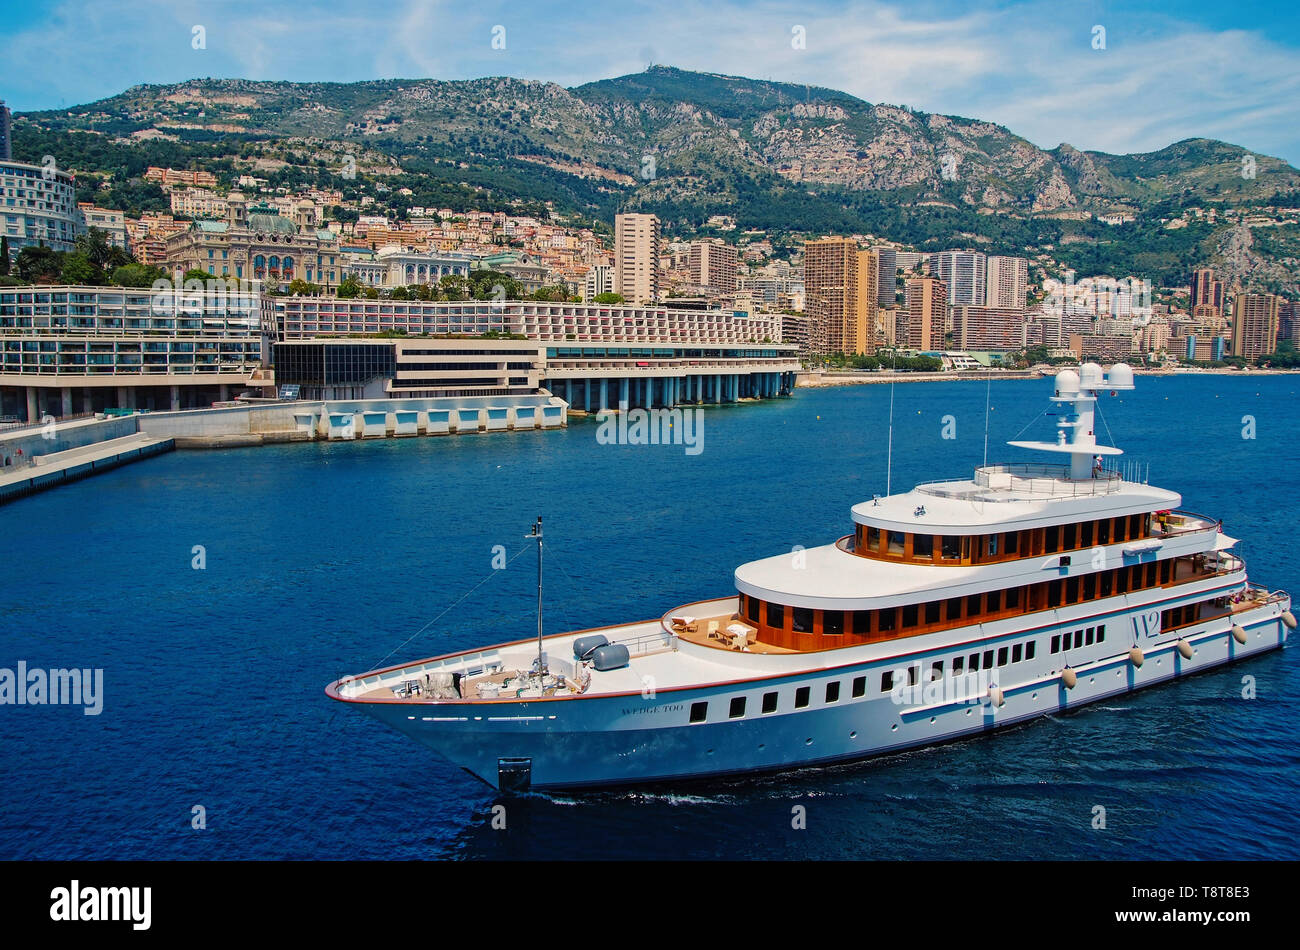 Monte Carlo, Monaco - December 08, 2009: W2 Wedge Too yacht go along sea coast. Water craft and city on mountain landscape. Luxury lifestyle. Pleasure and sport. Summer vacation and wanderlust. - Stock Image